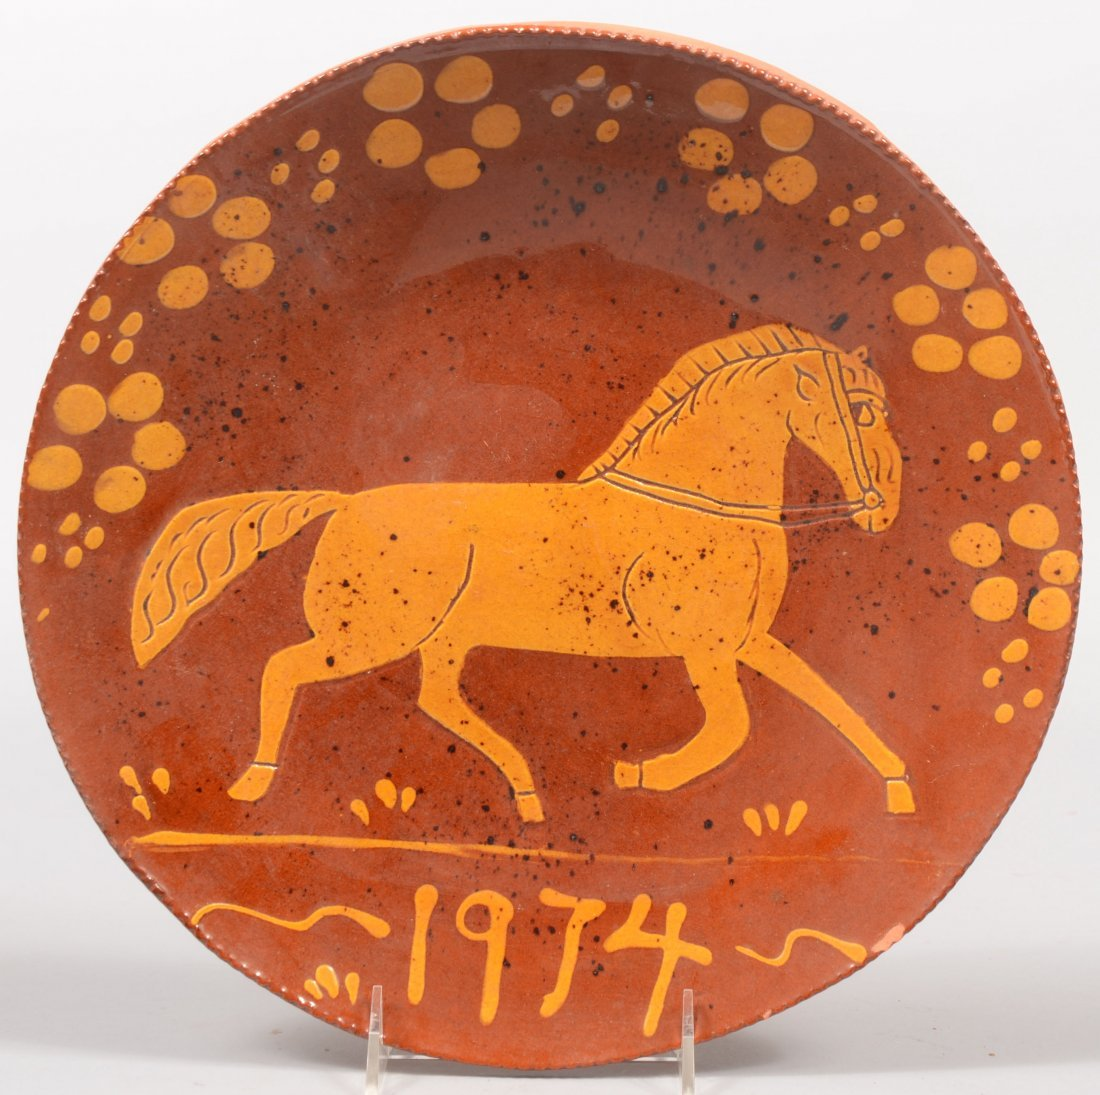 106: Contemporary Redware Charger by Lester Breininger.